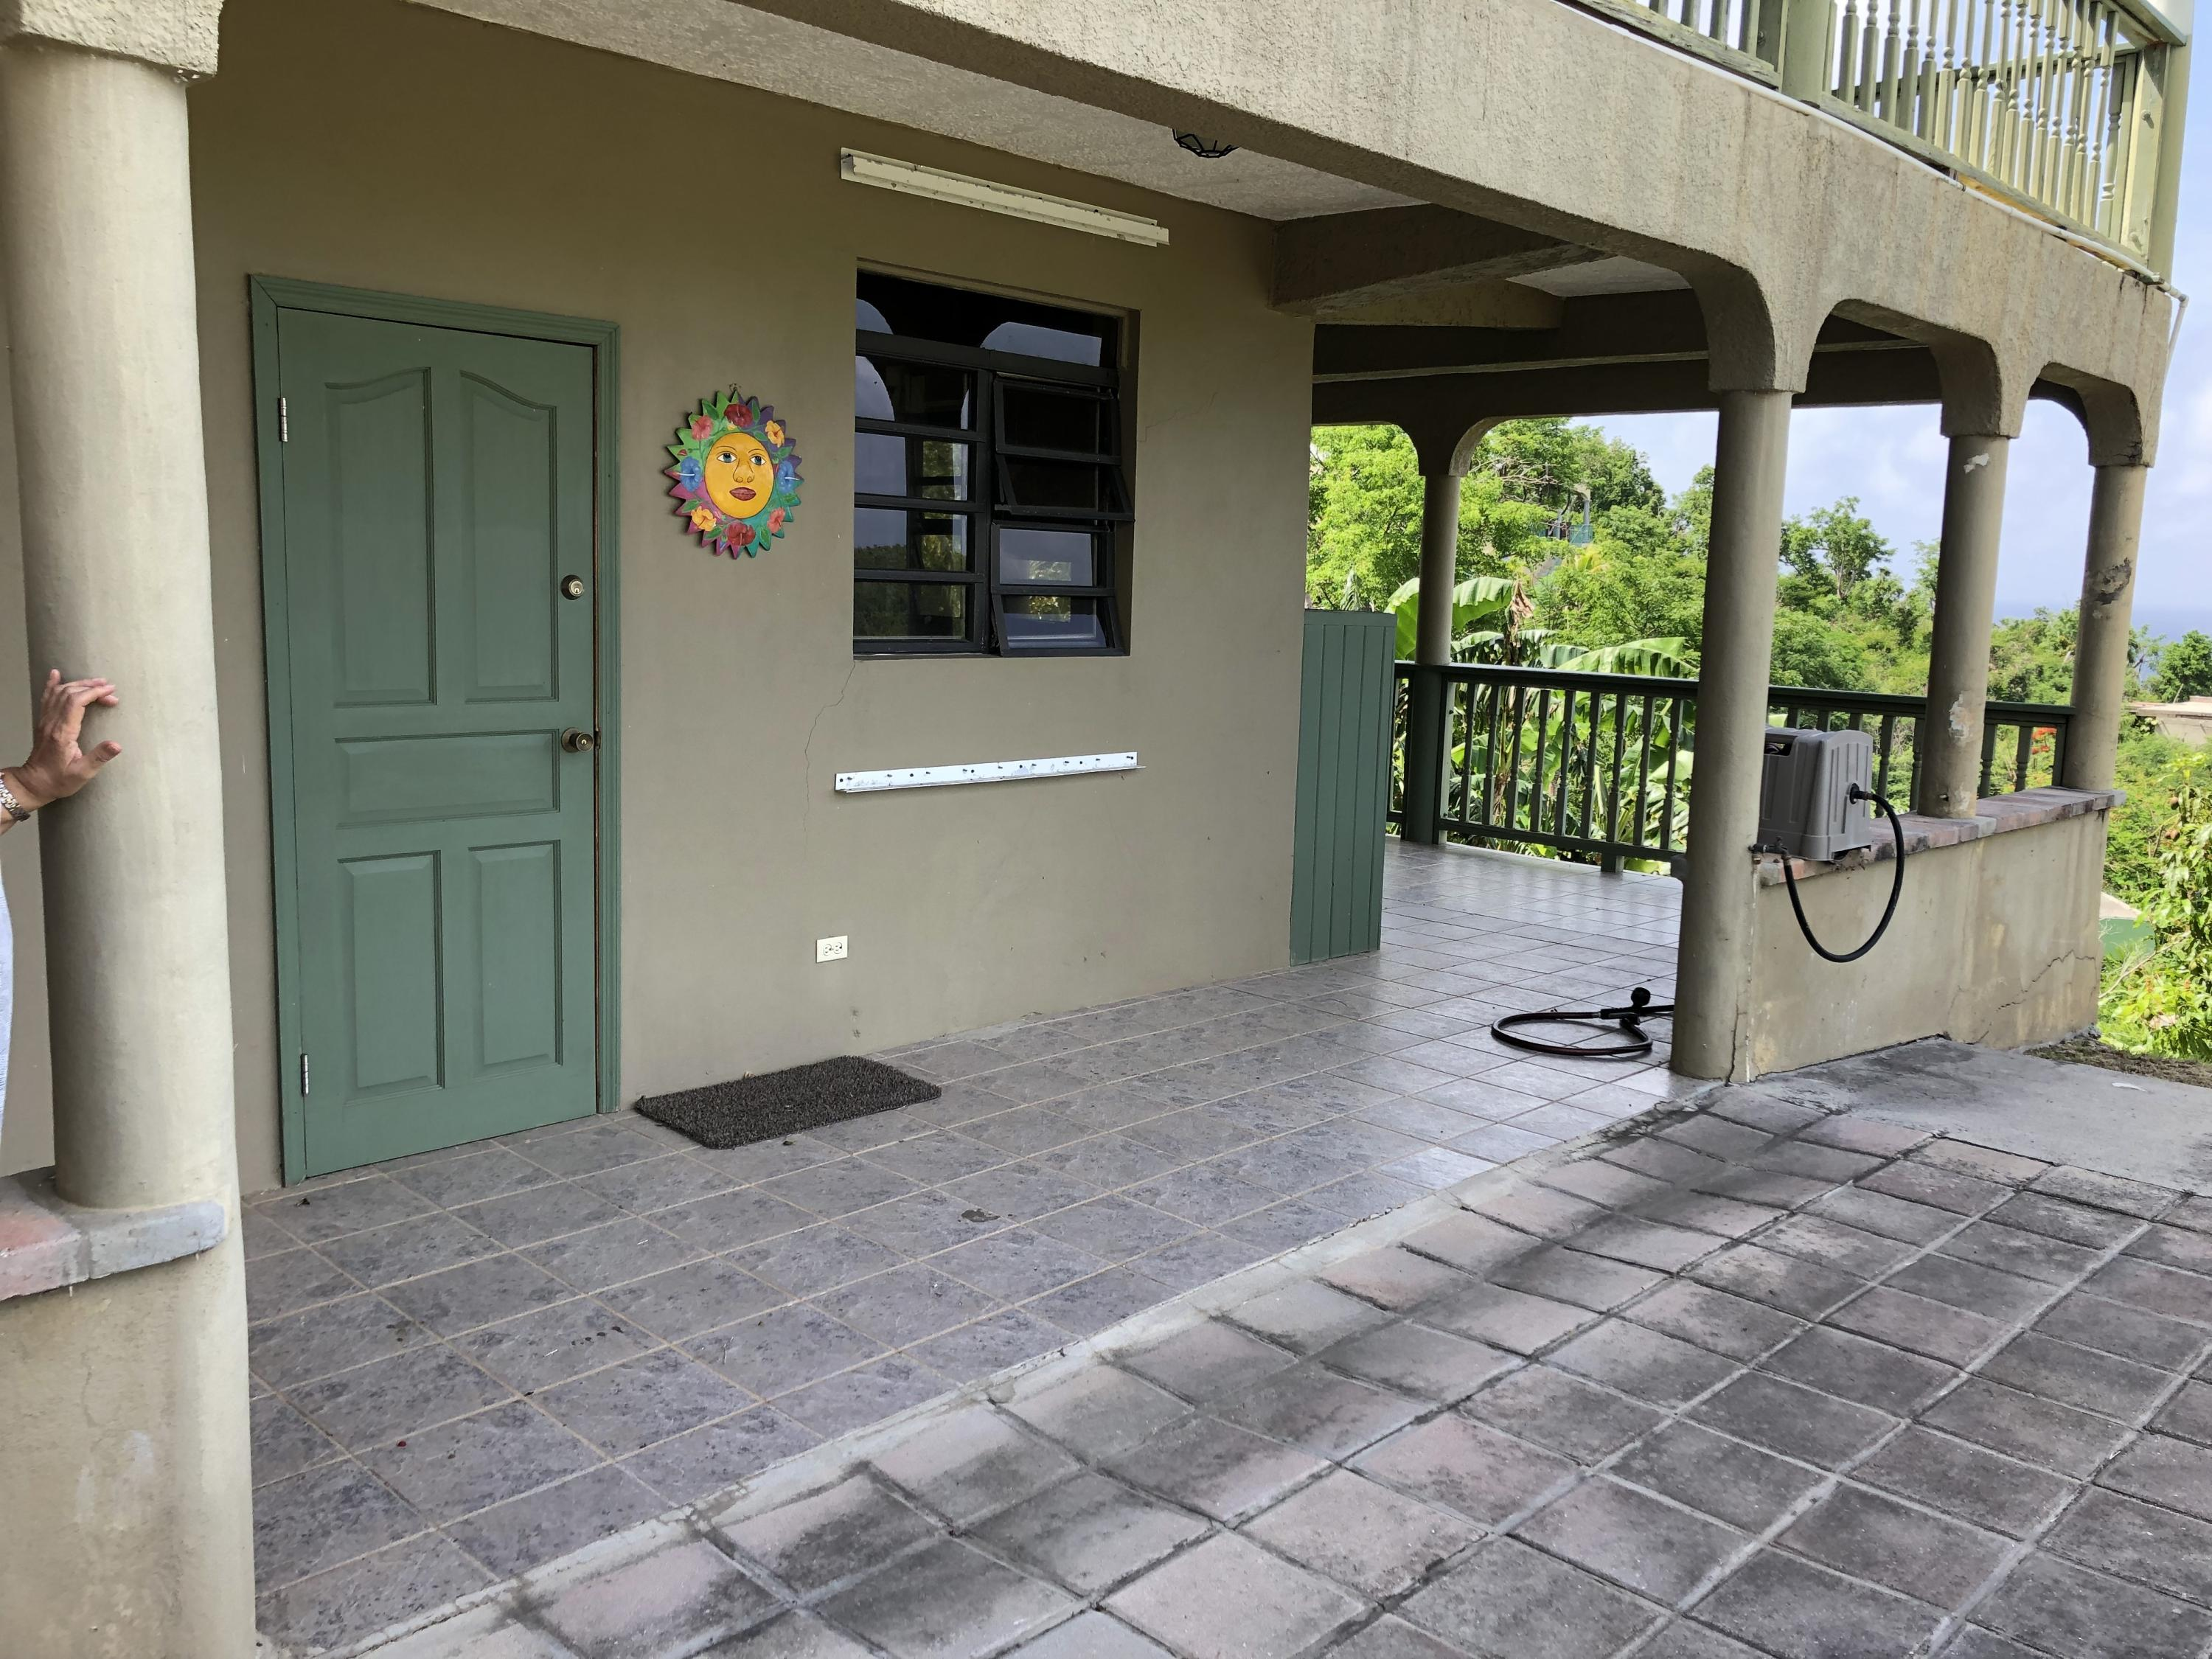 St John, Virgin Islands 00830, 6 Bedrooms Bedrooms, ,4 BathroomsBathrooms,Residential,For Sale,19-252